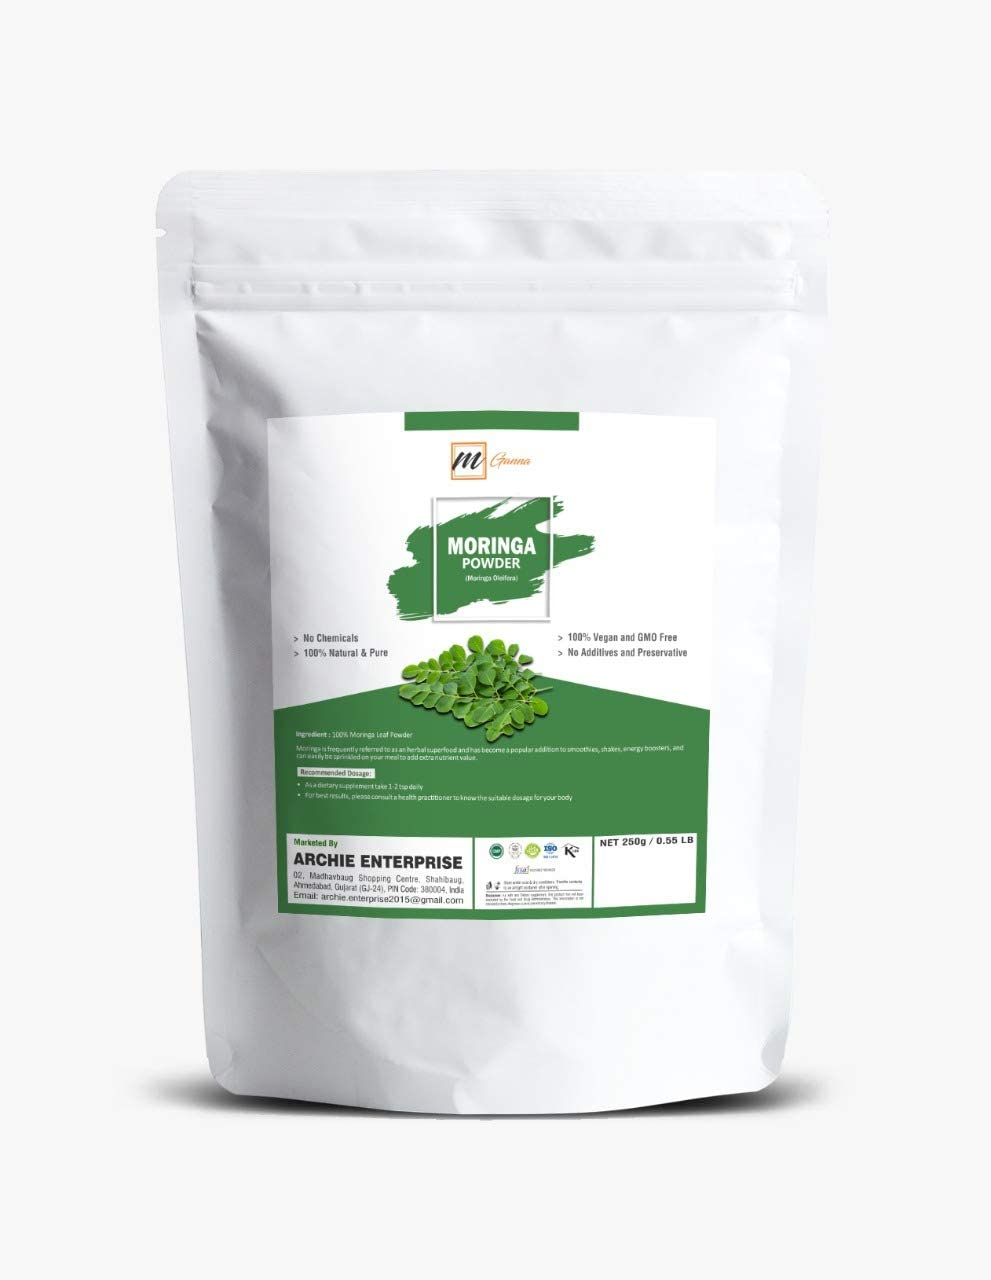 Natural 0.55 lbs Moringa Oleifera Leaf Powder Sun-Dried Multivitamin Antioxidants All Natural Energy Boost Raw Superfood Great in Green Drinks, Smoothies Immune Vitamin and Minerals